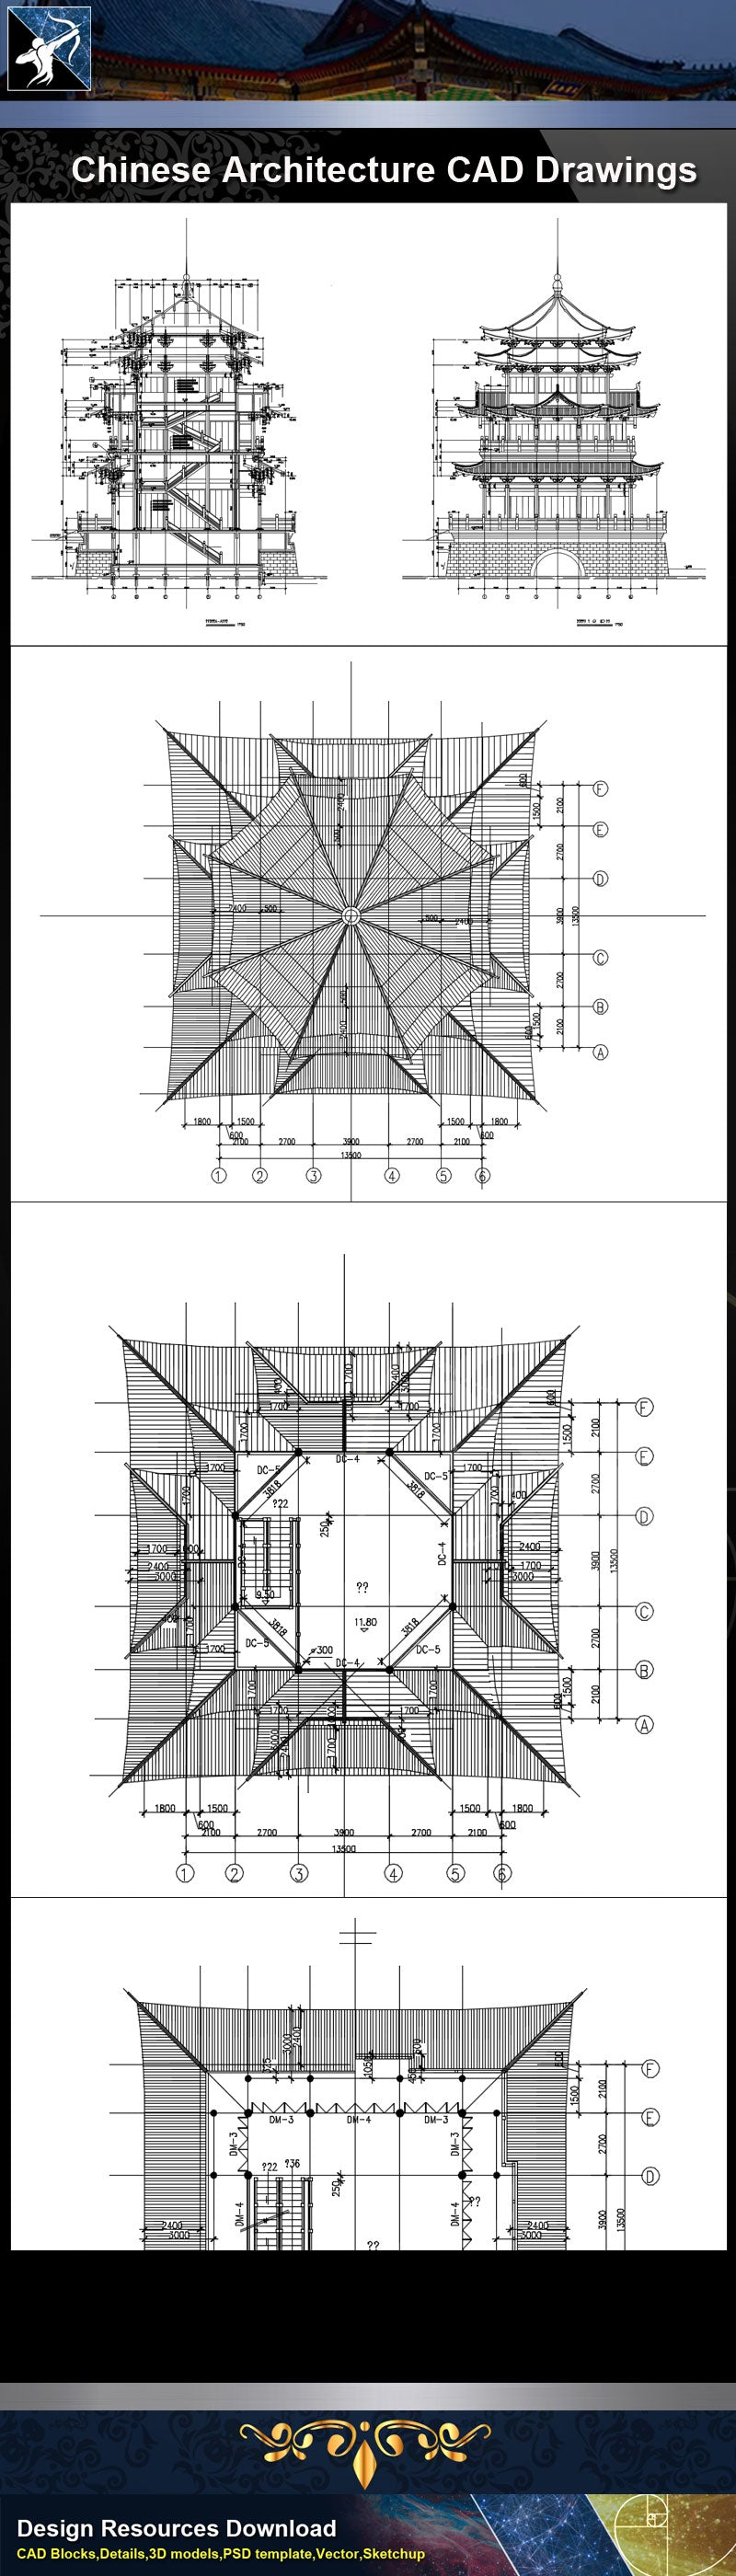 ★Chinese Architecture CAD Drawings-Chinese Tower 2